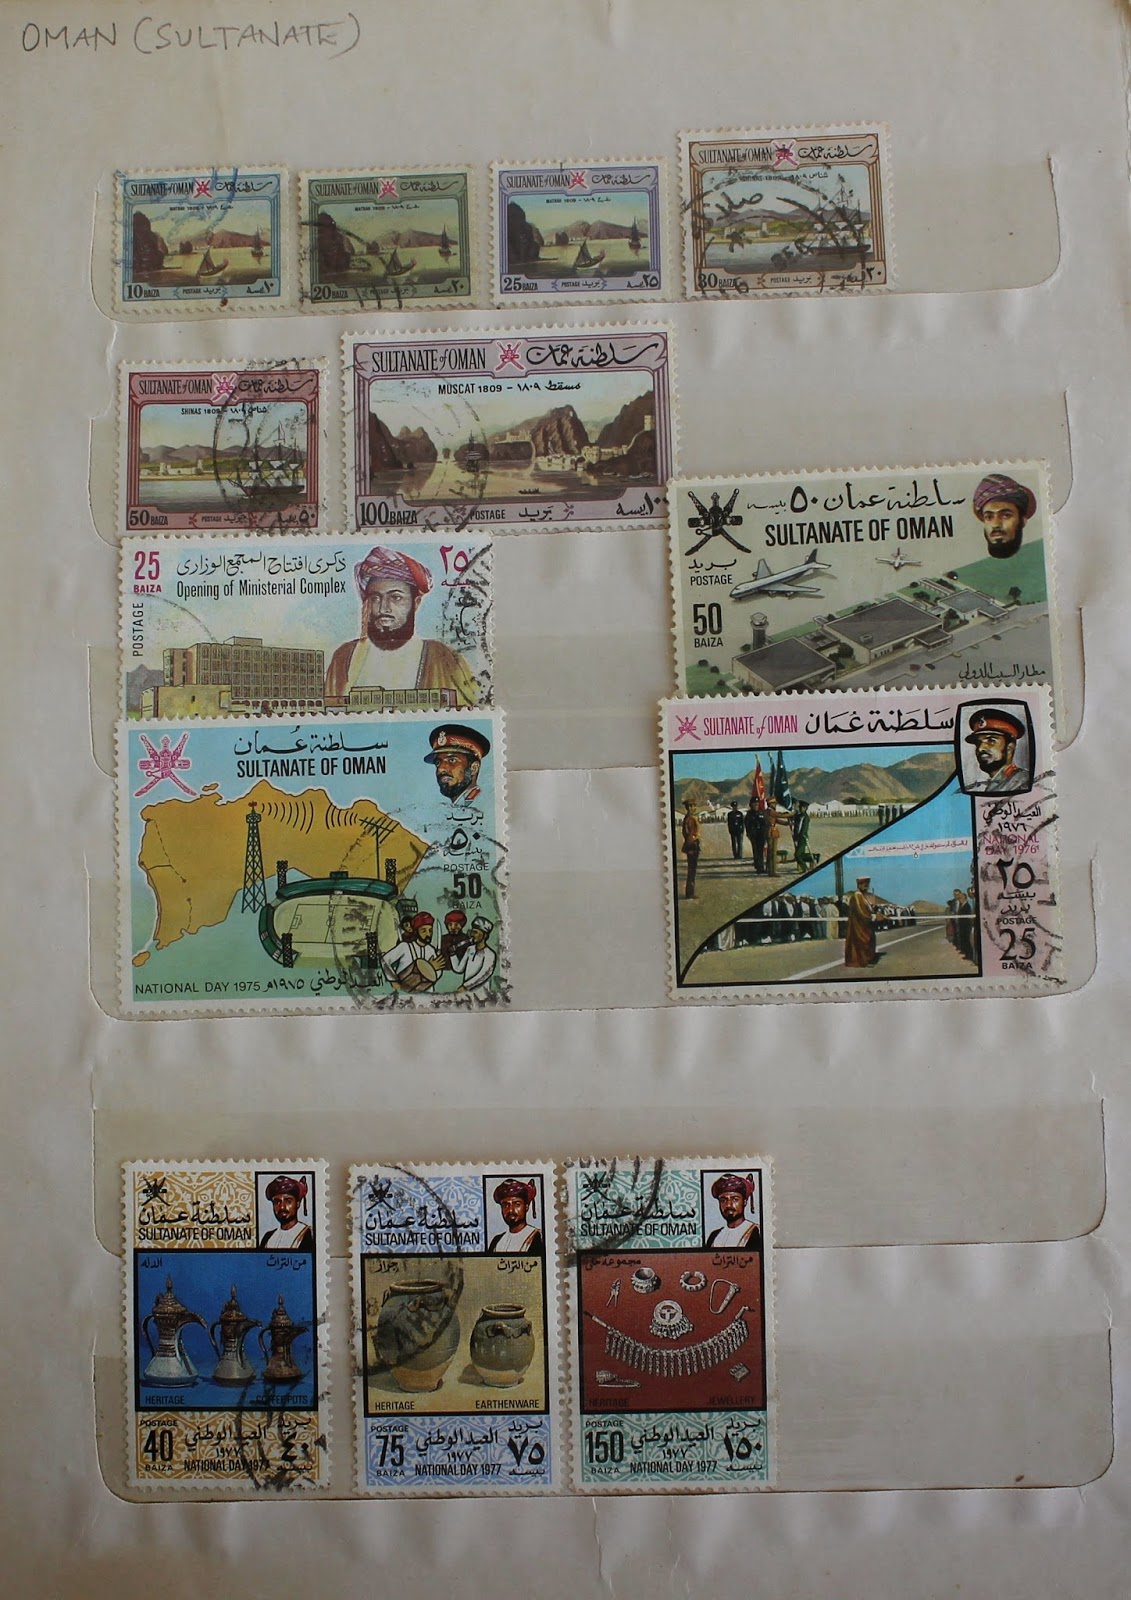 1994 Middle East Sultanate Of Oman 3 Stamps Omani Costumes Oman